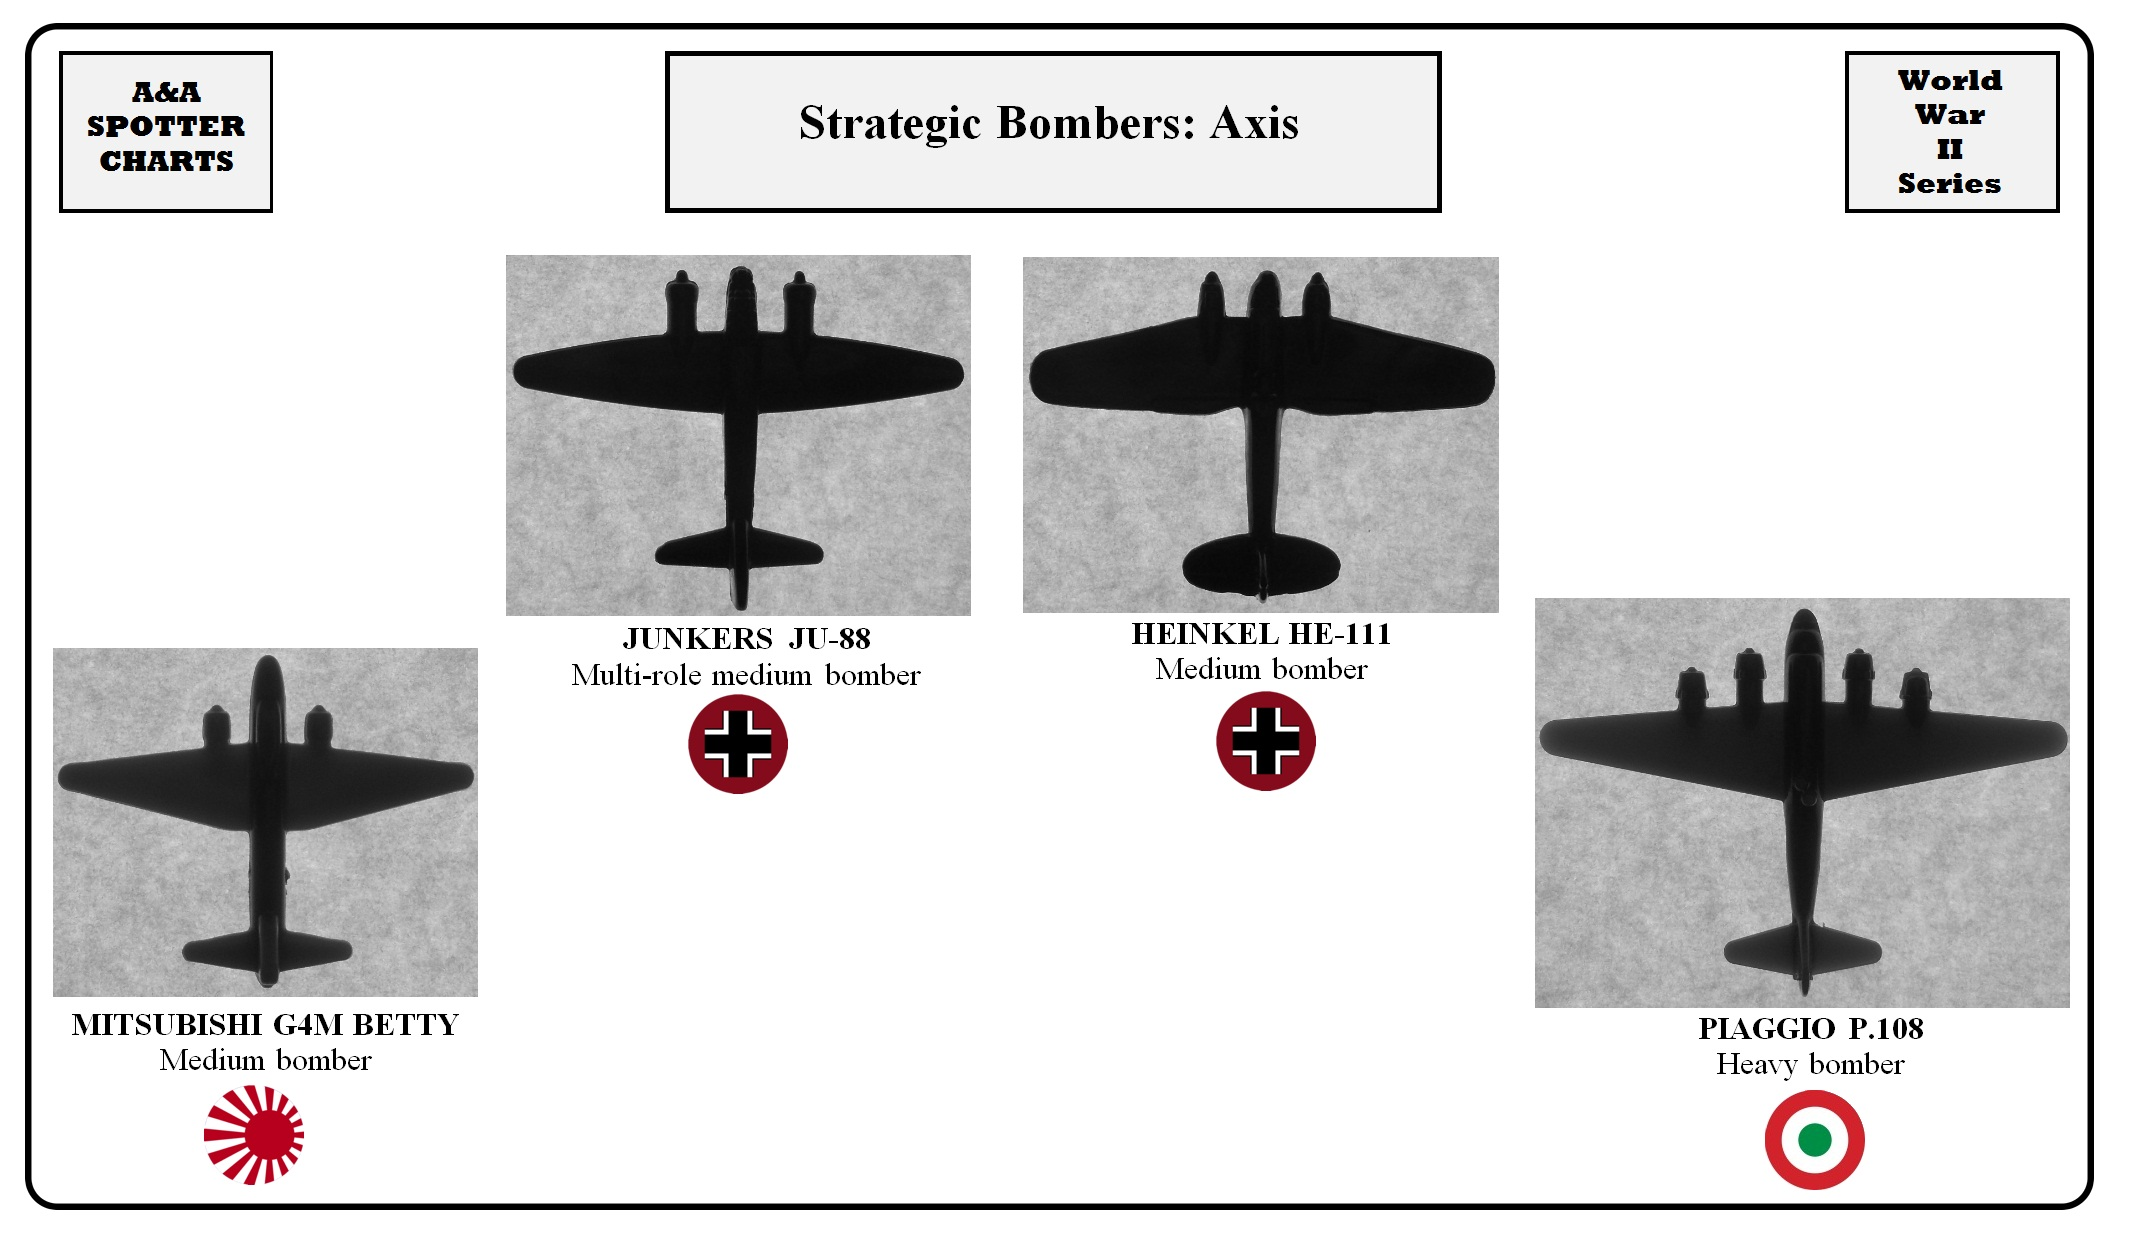 WW2-Air-Strategic Bombers-Axis.jpg